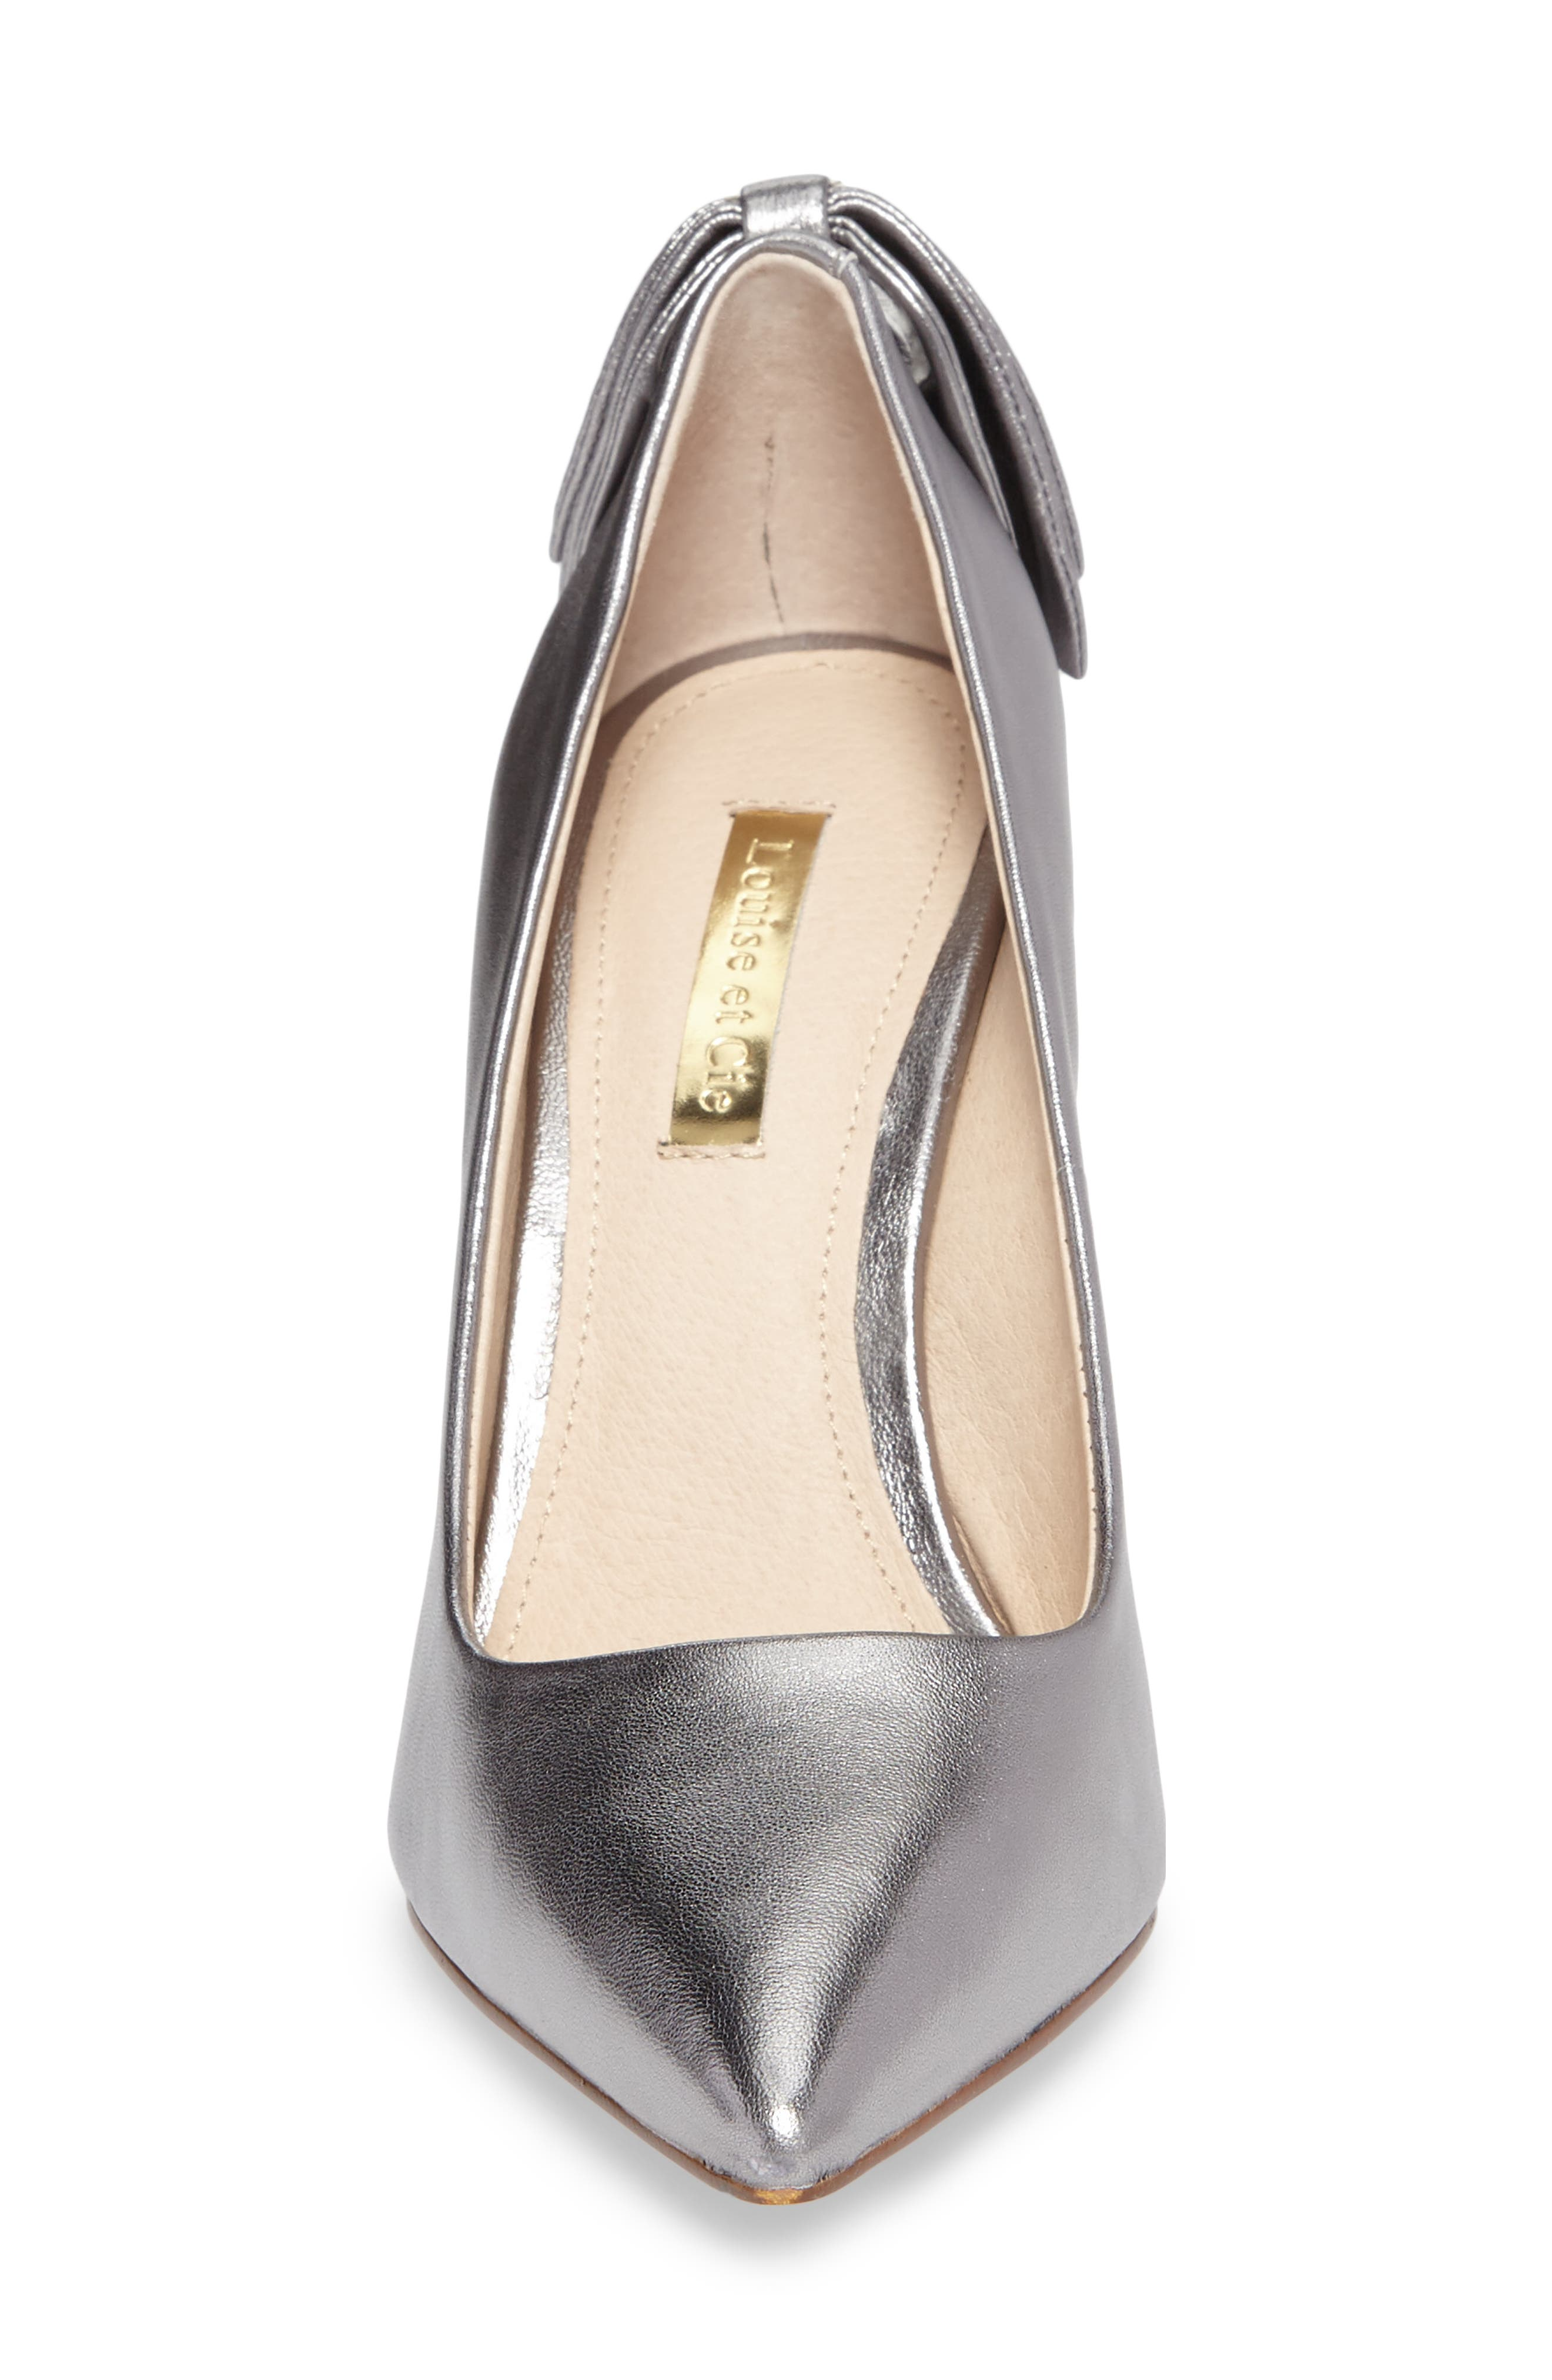 Josely Pointy Toe Pump,                             Alternate thumbnail 4, color,                             Chrome Leather